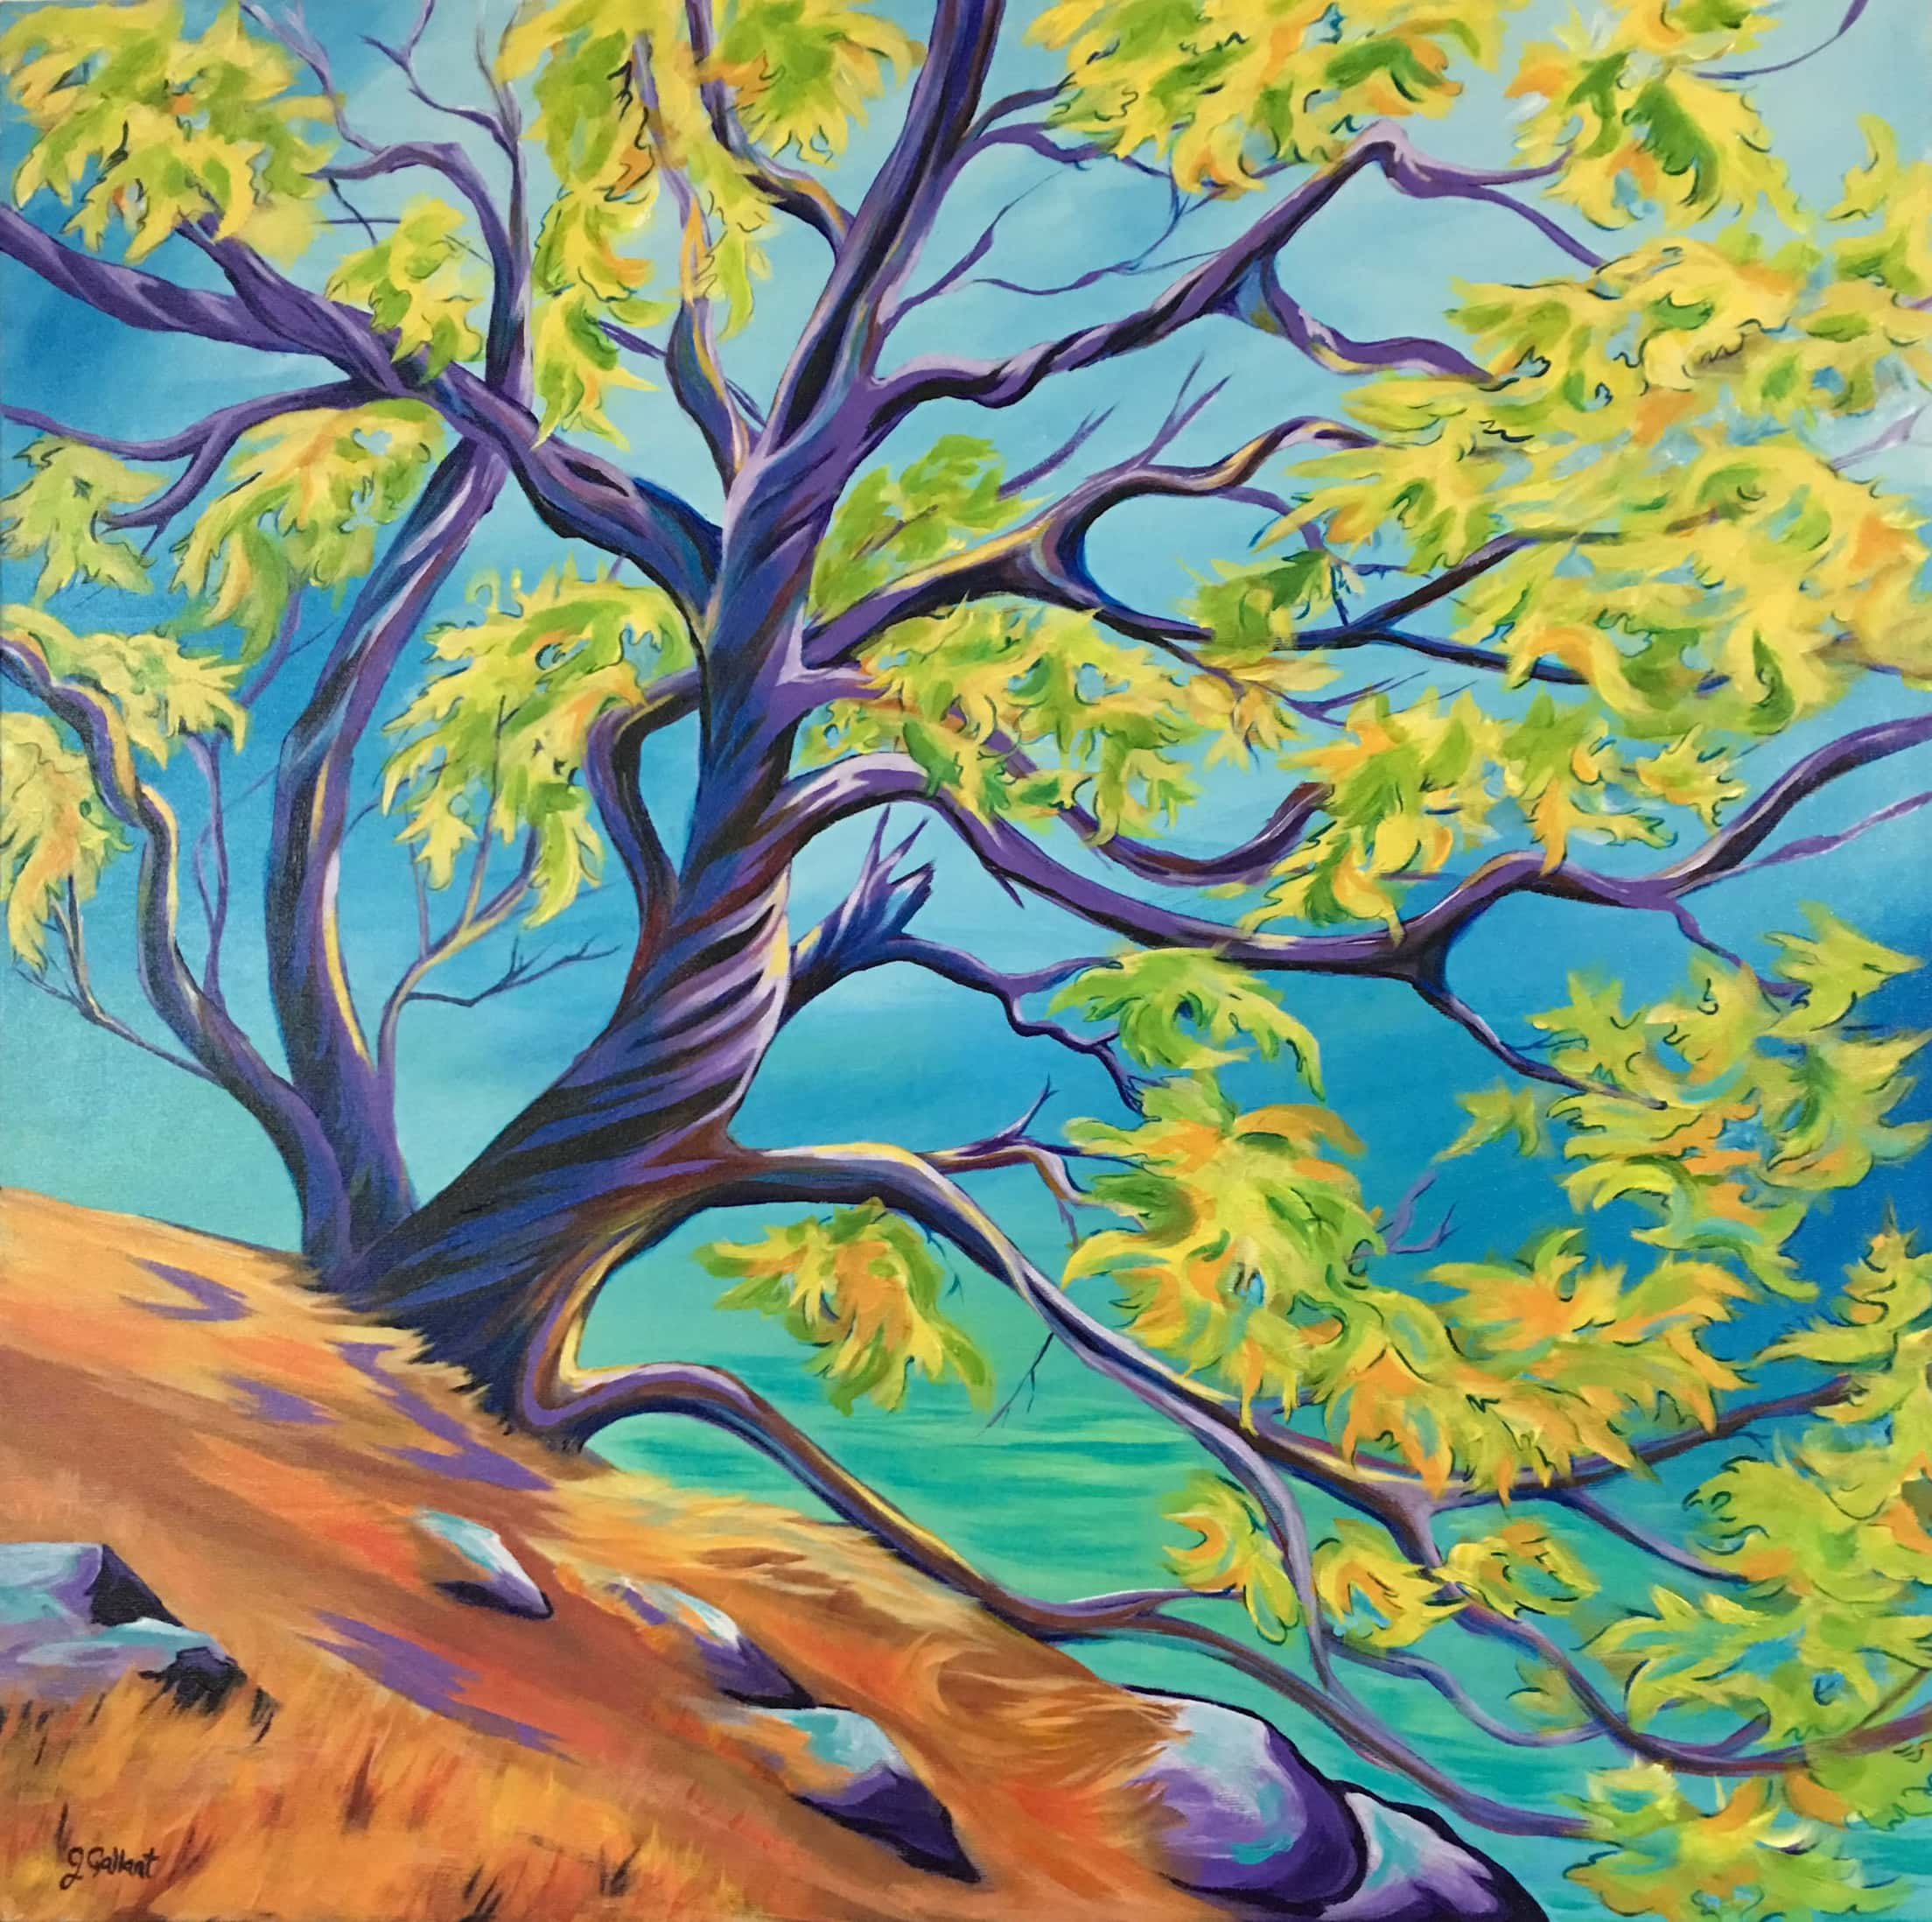 Dancing Tree Acrylic Painting by Janice Gallant https://thecreationguild.com/